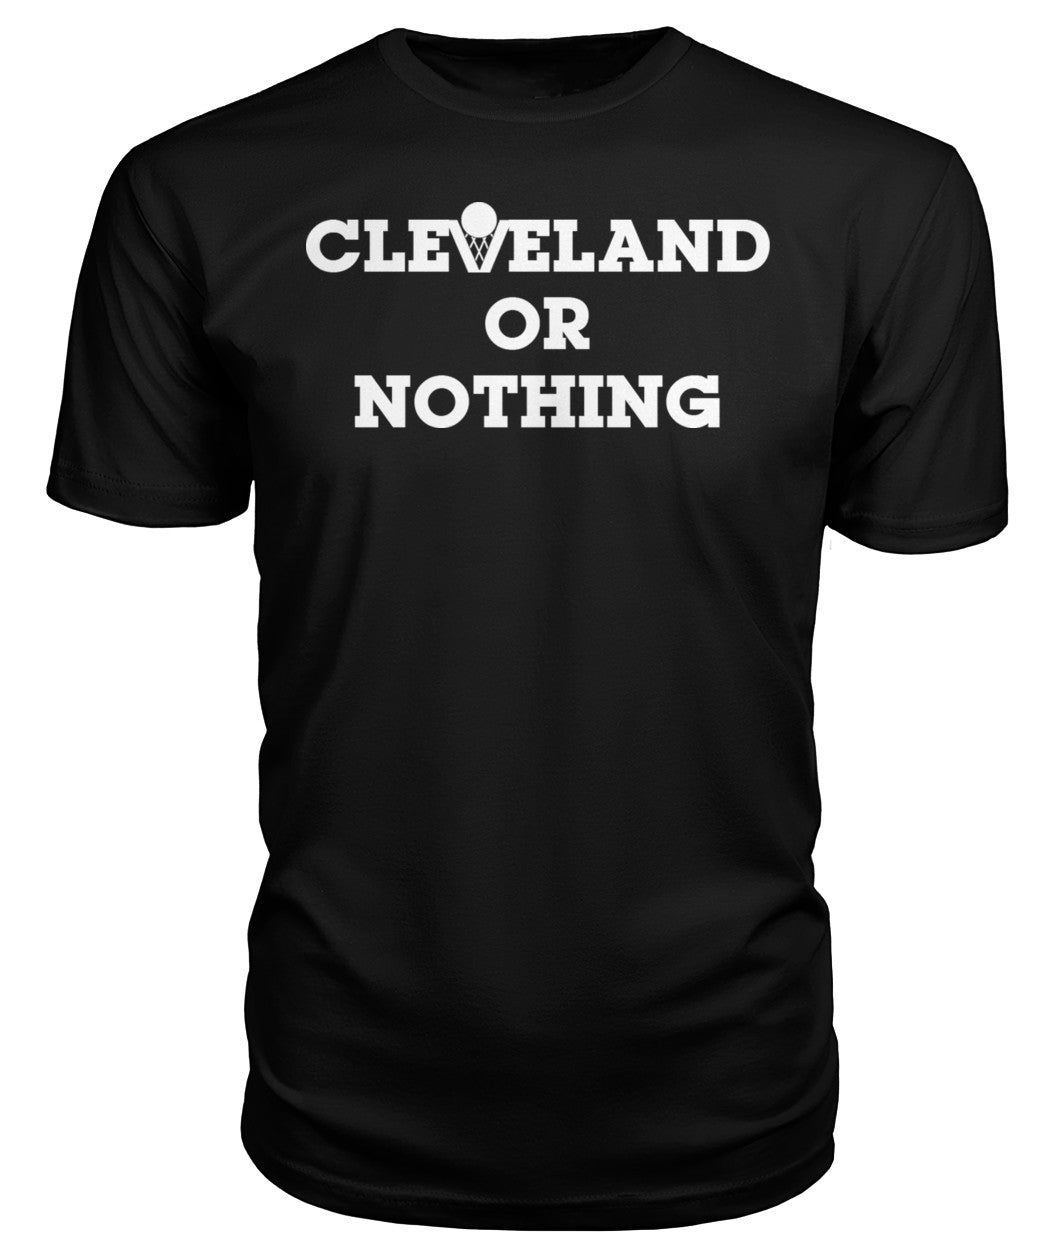 Cleveland or Nothing